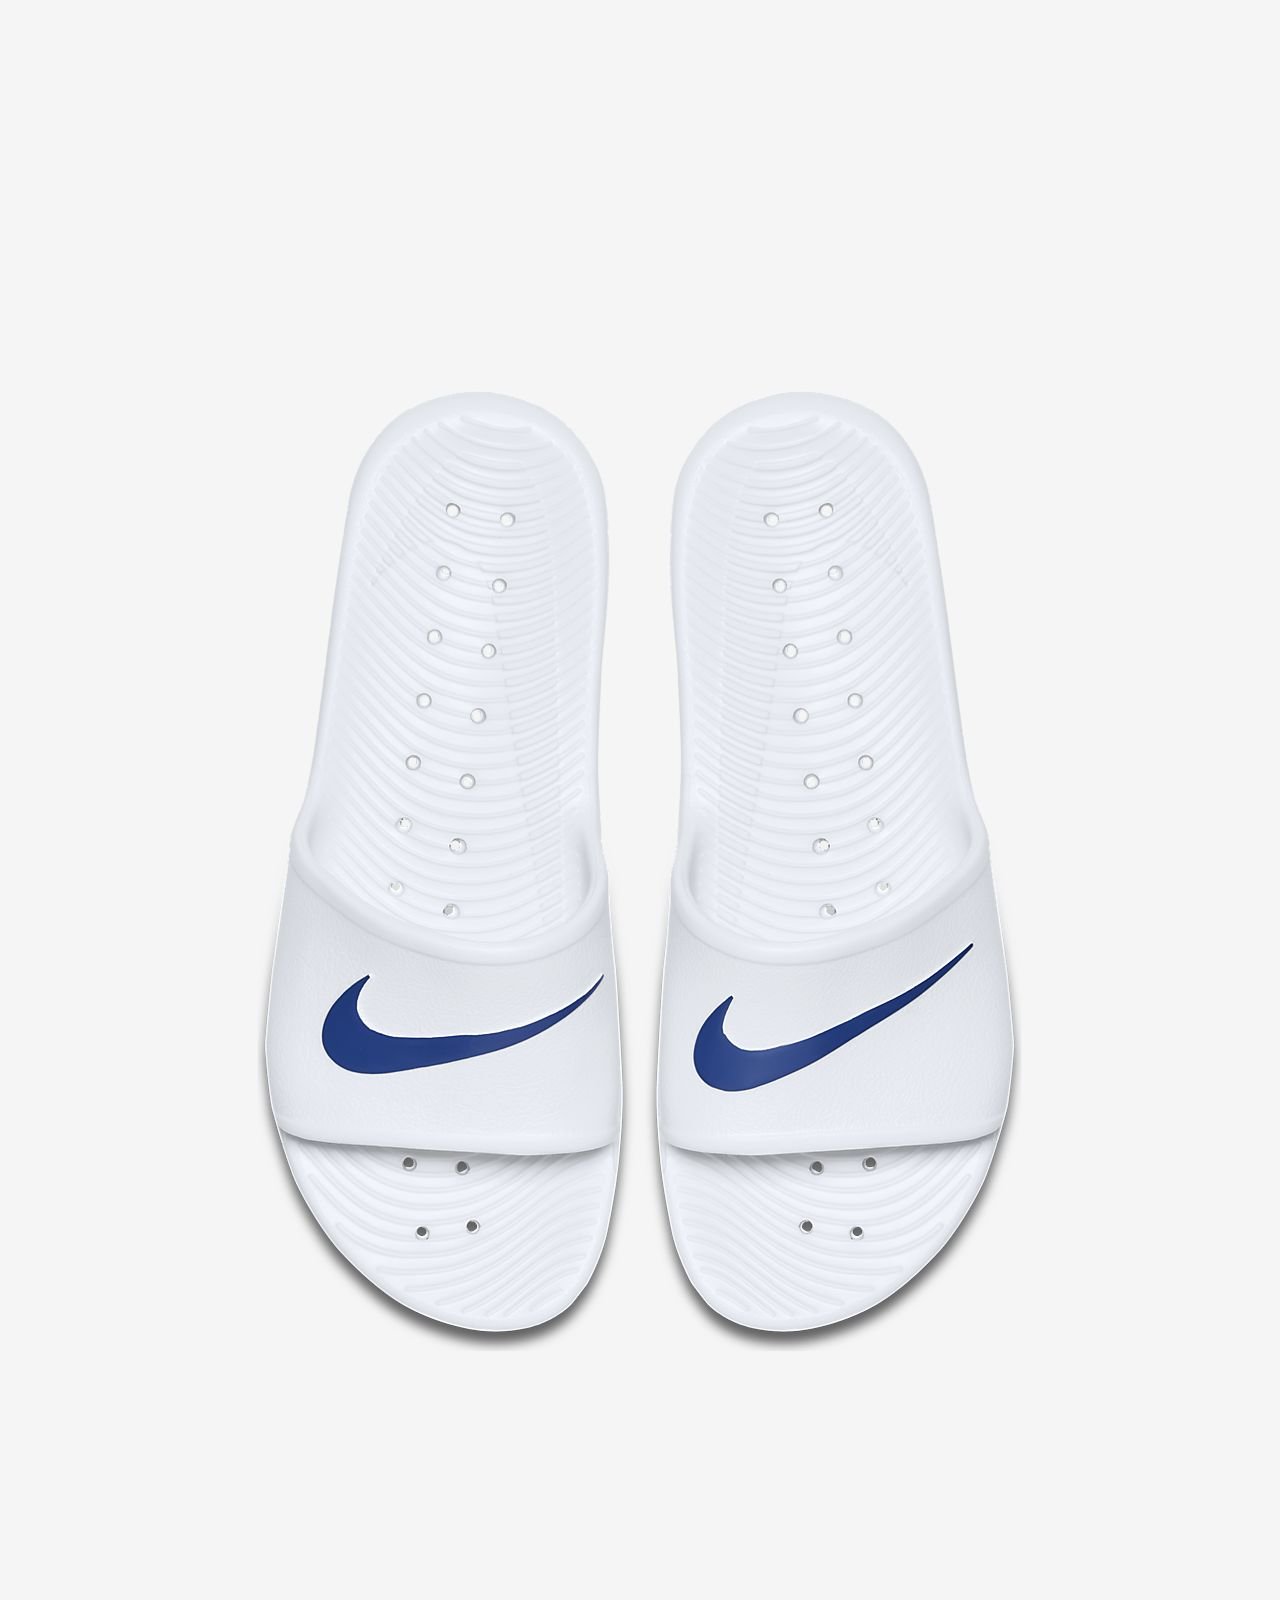 Nike Kawa Shower Herren Badeslipper